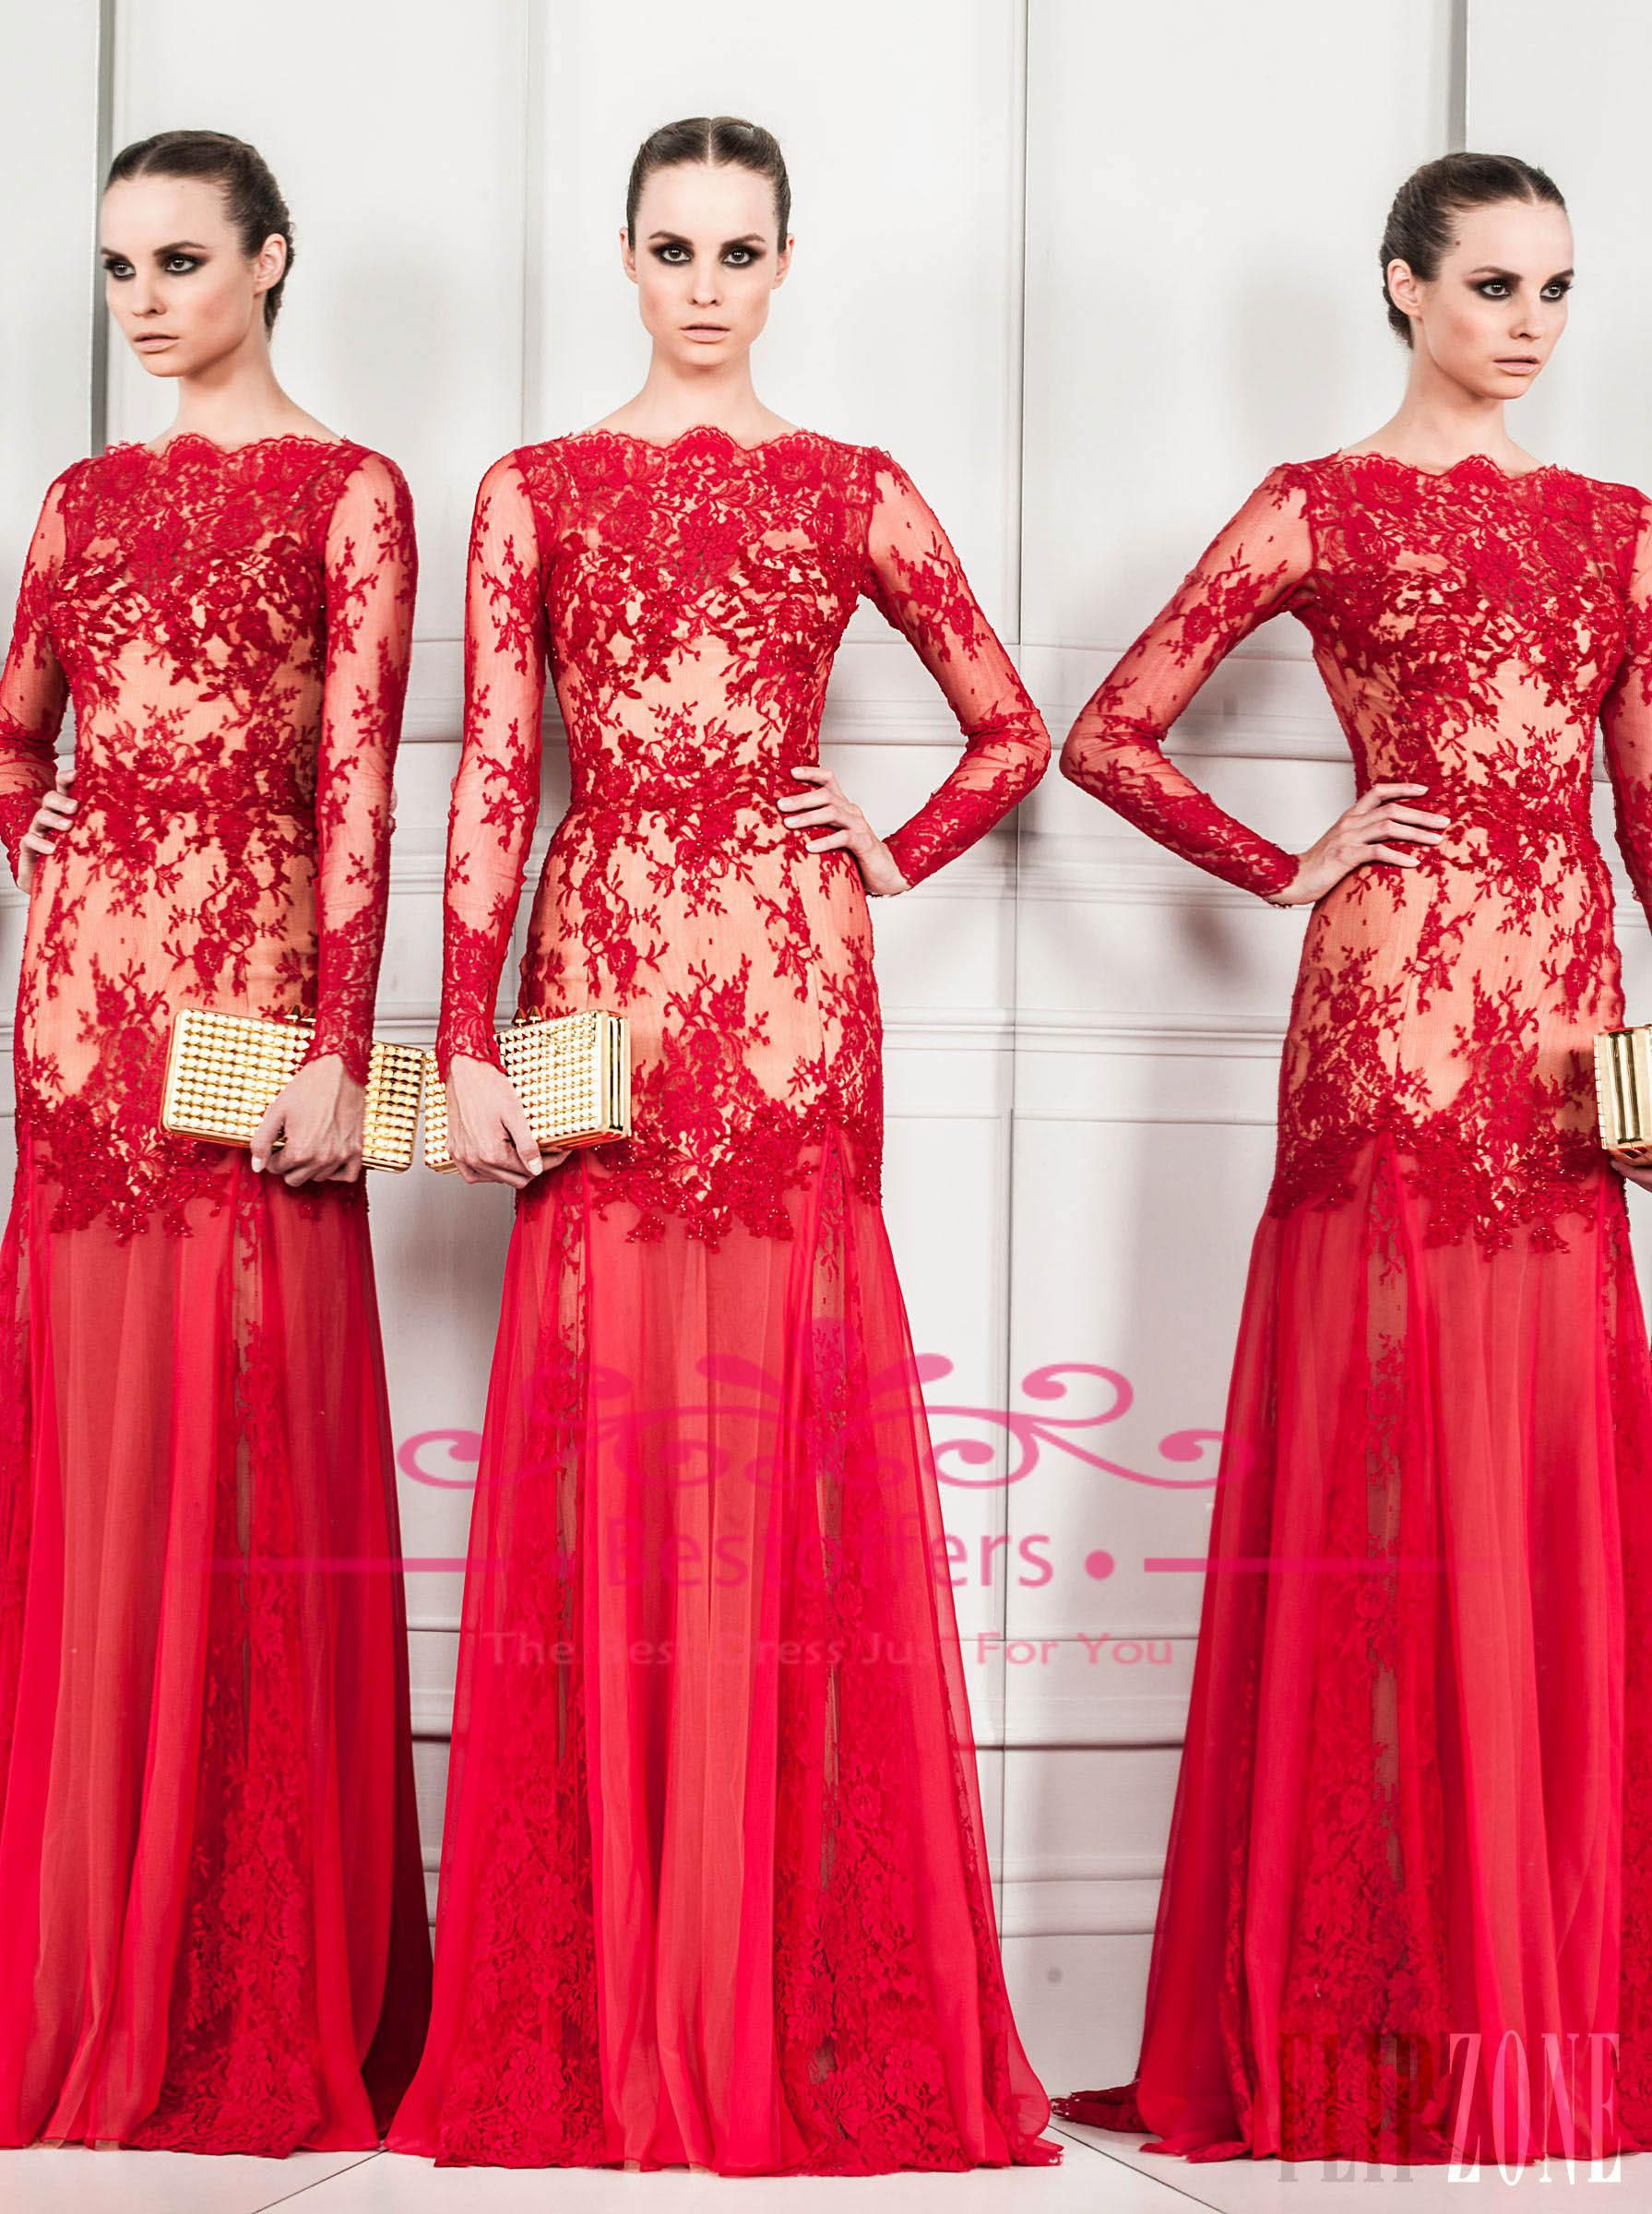 Discount red evening dresses with long sheer lace sleeves off the